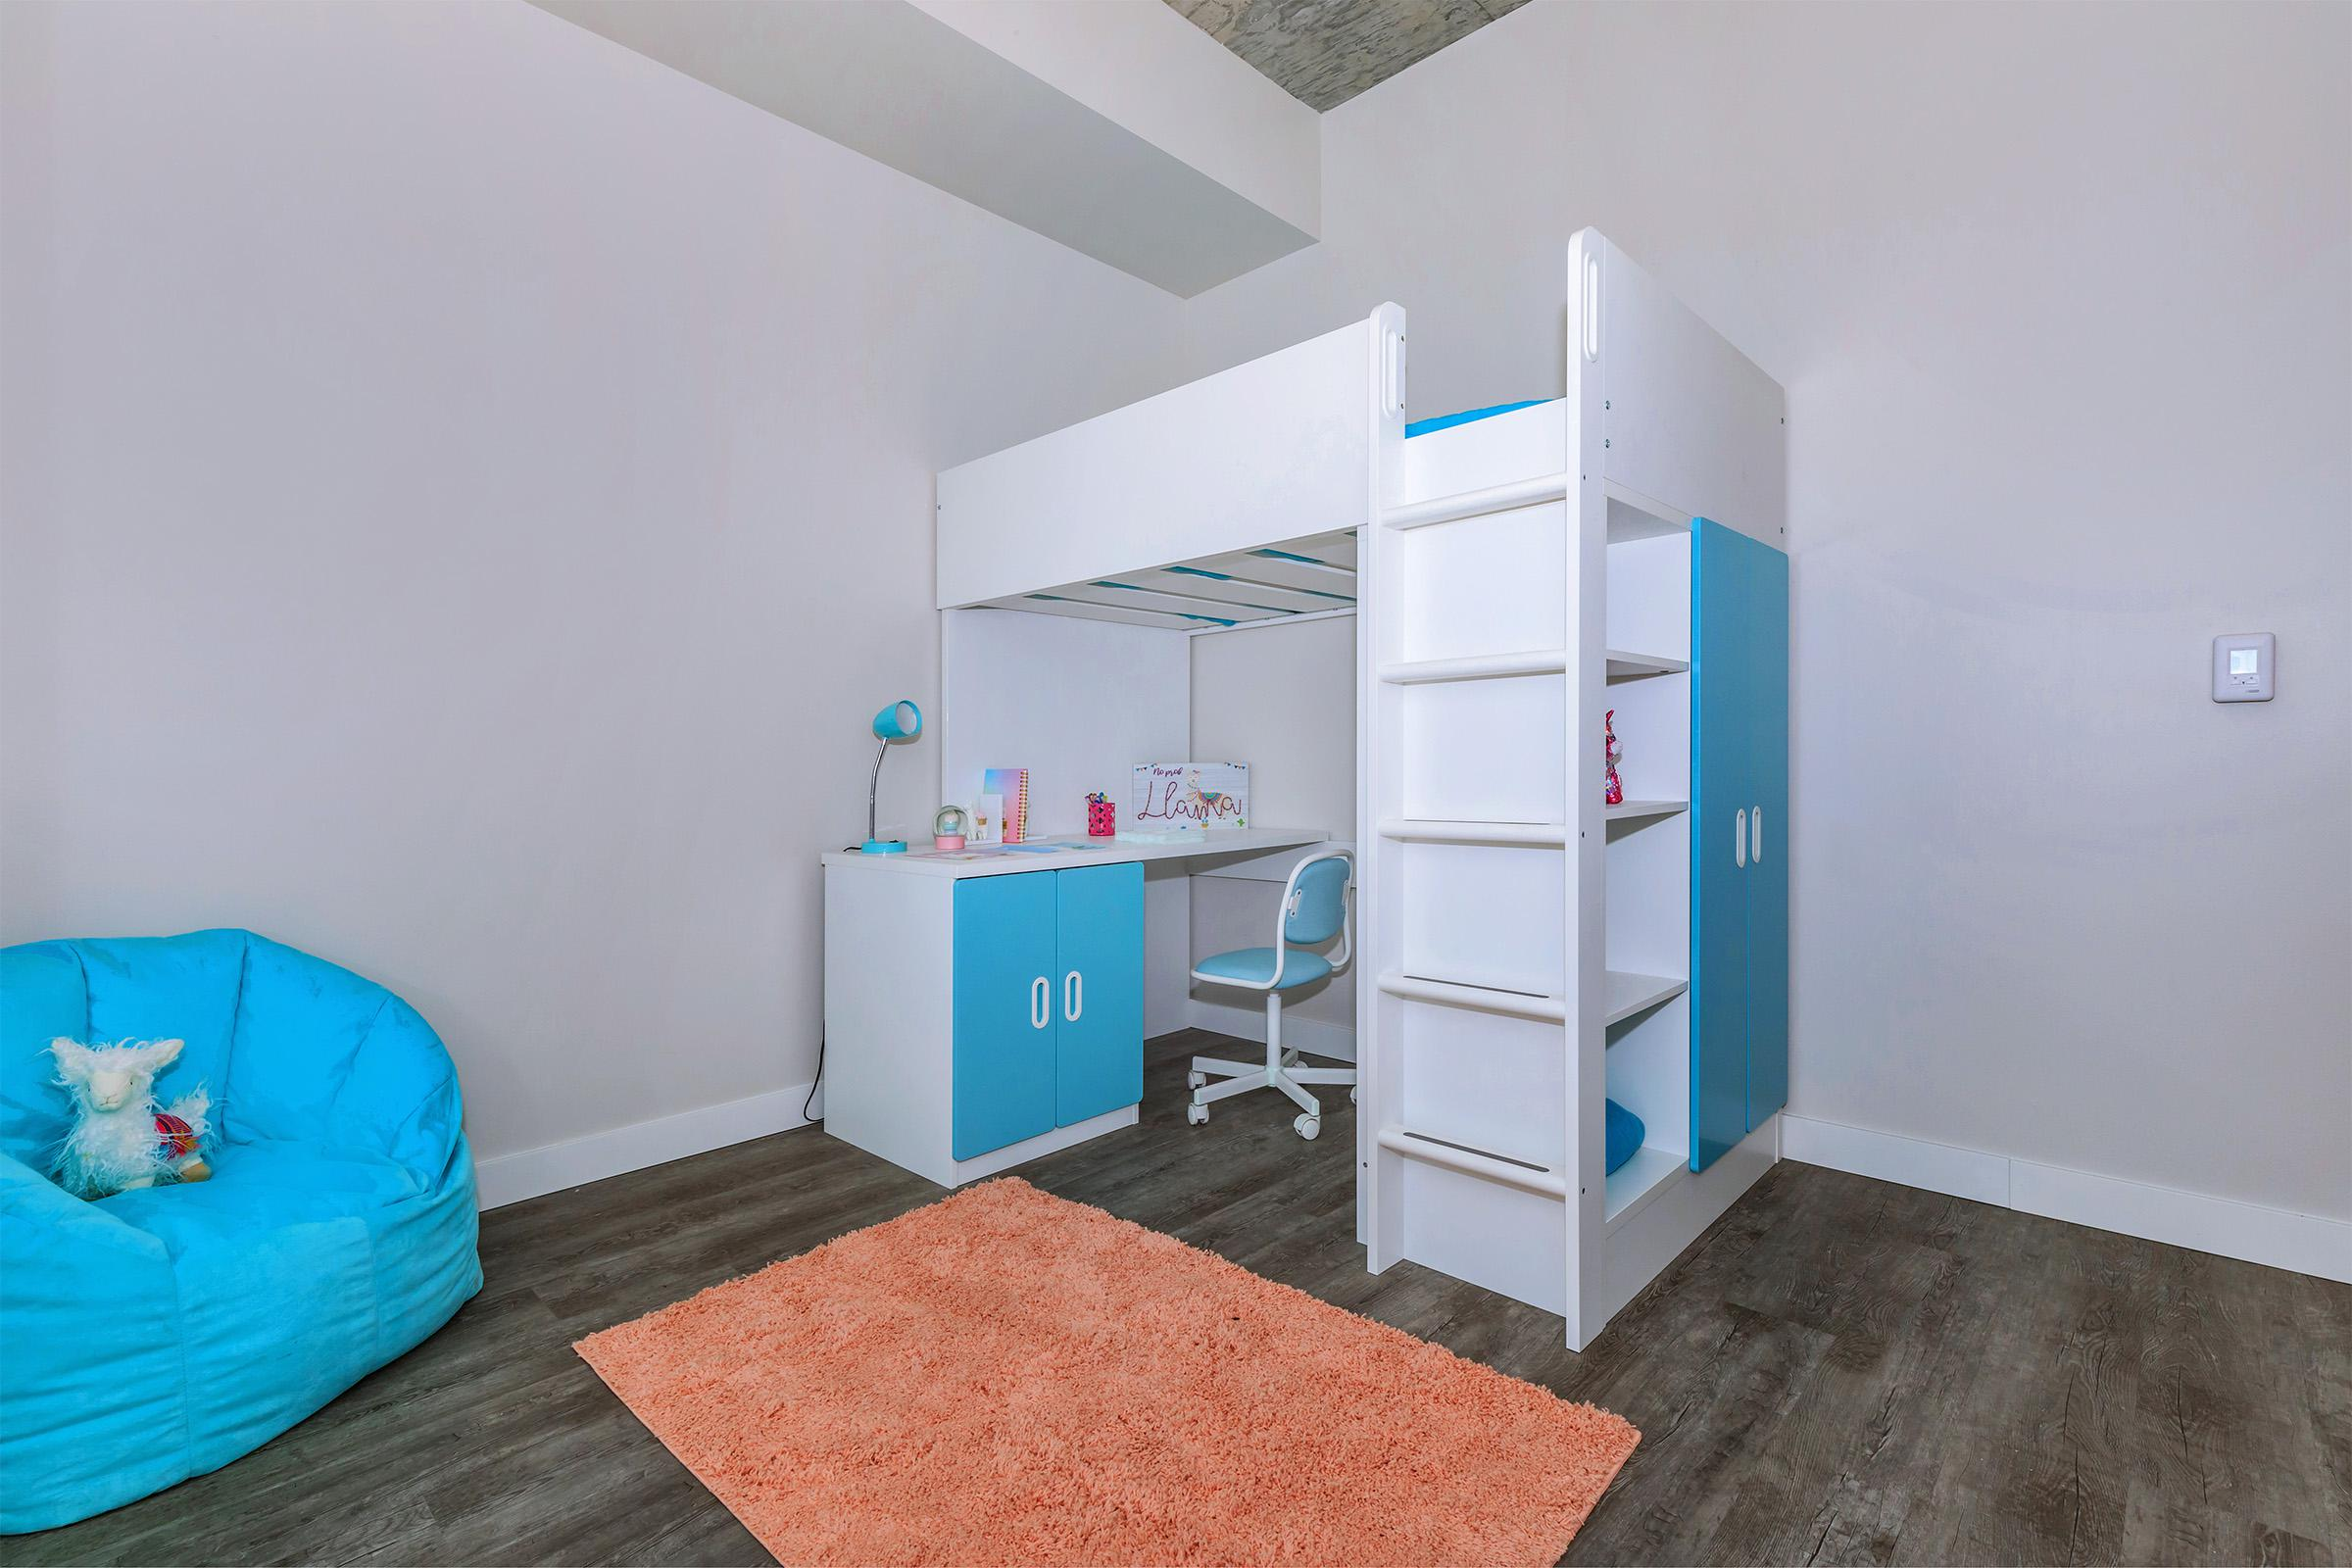 a refrigerator freezer sitting in a room